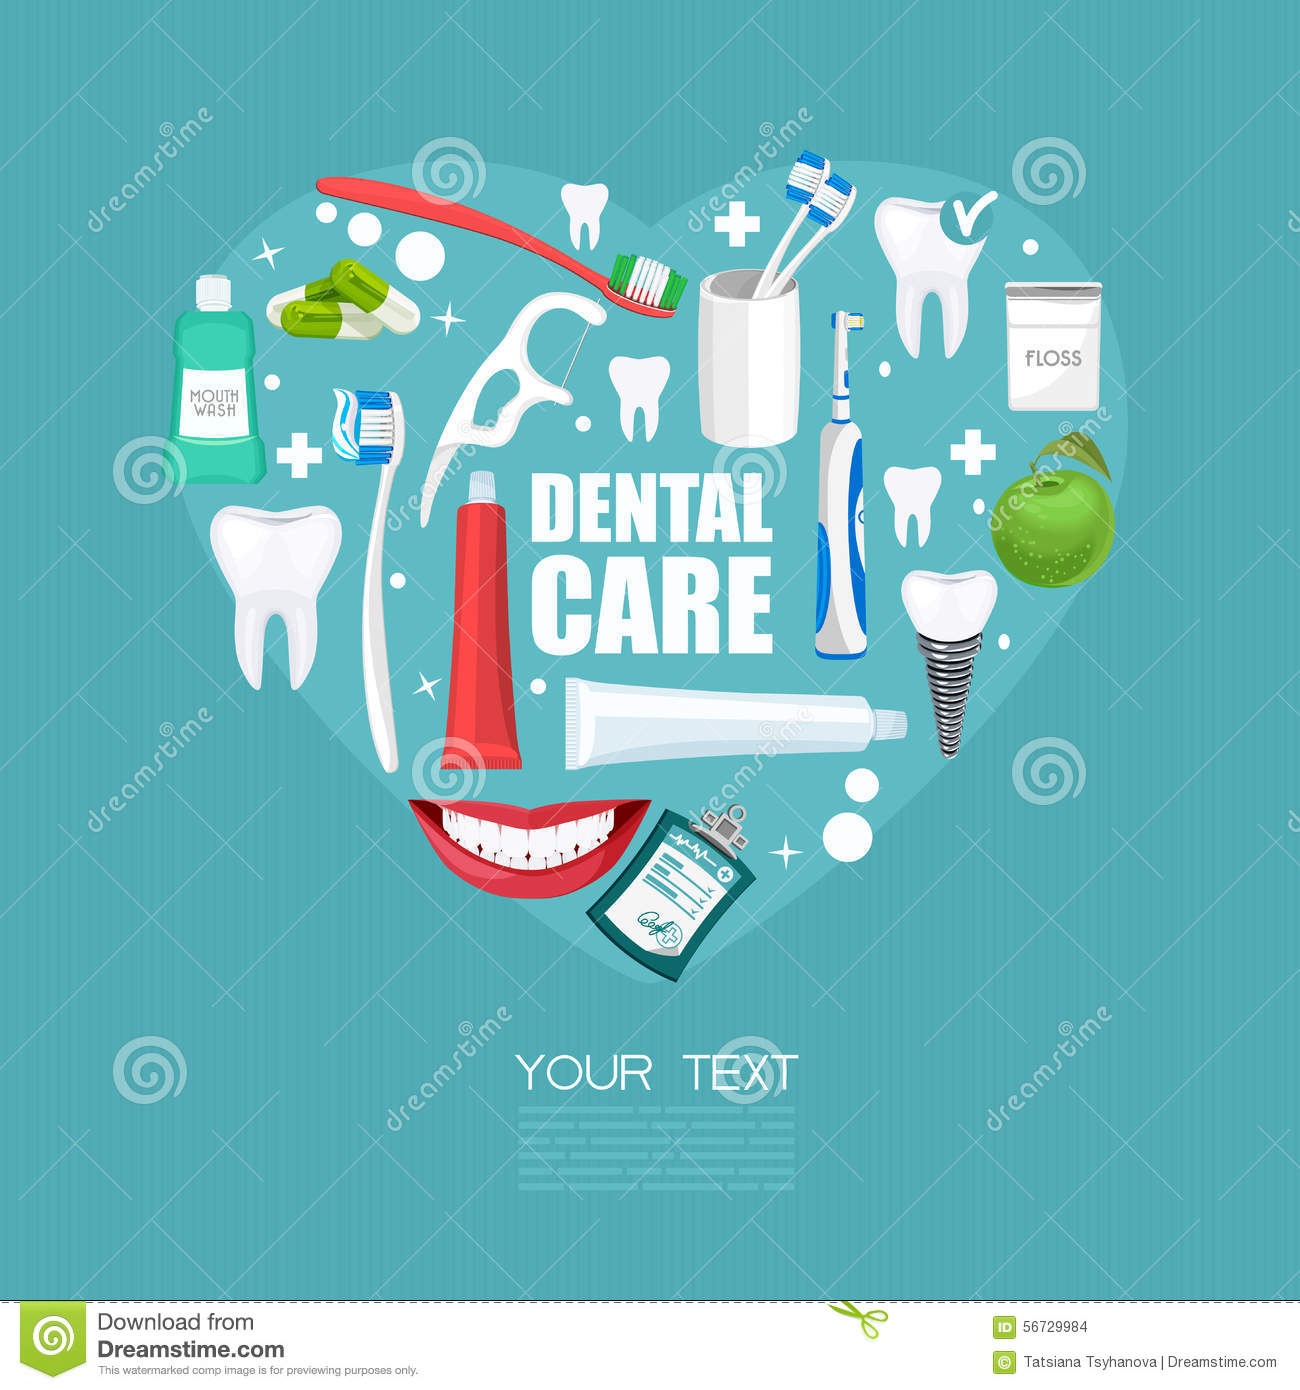 dental-care-poster-equipments-heart-shape-treatment-tools-blue-background-dentistry-infographics-56729984.jpg